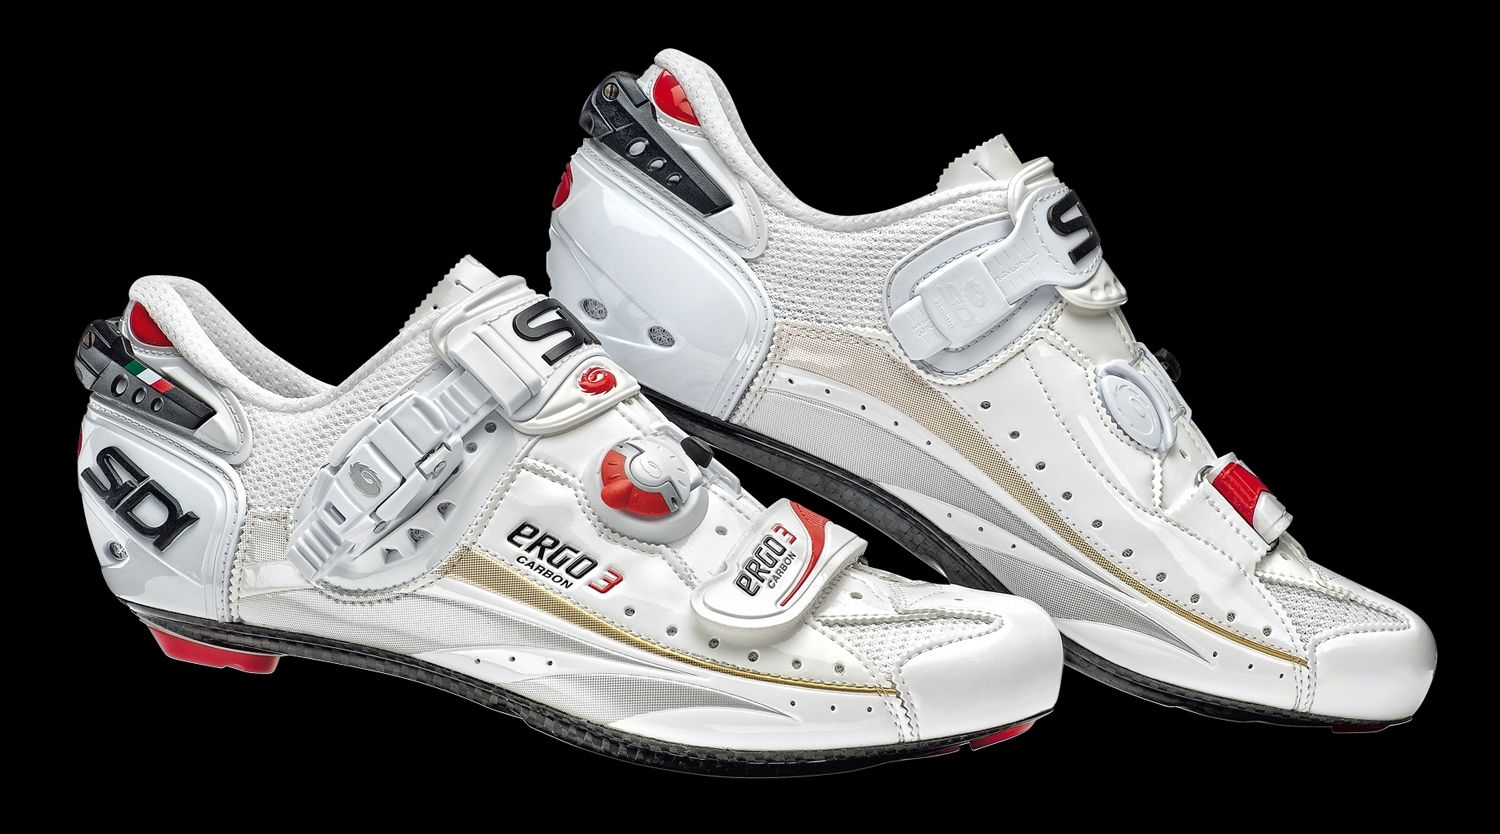 Sidi Ergo 3 carbon | Products I Love | Pinterest | Cycling shoes ...